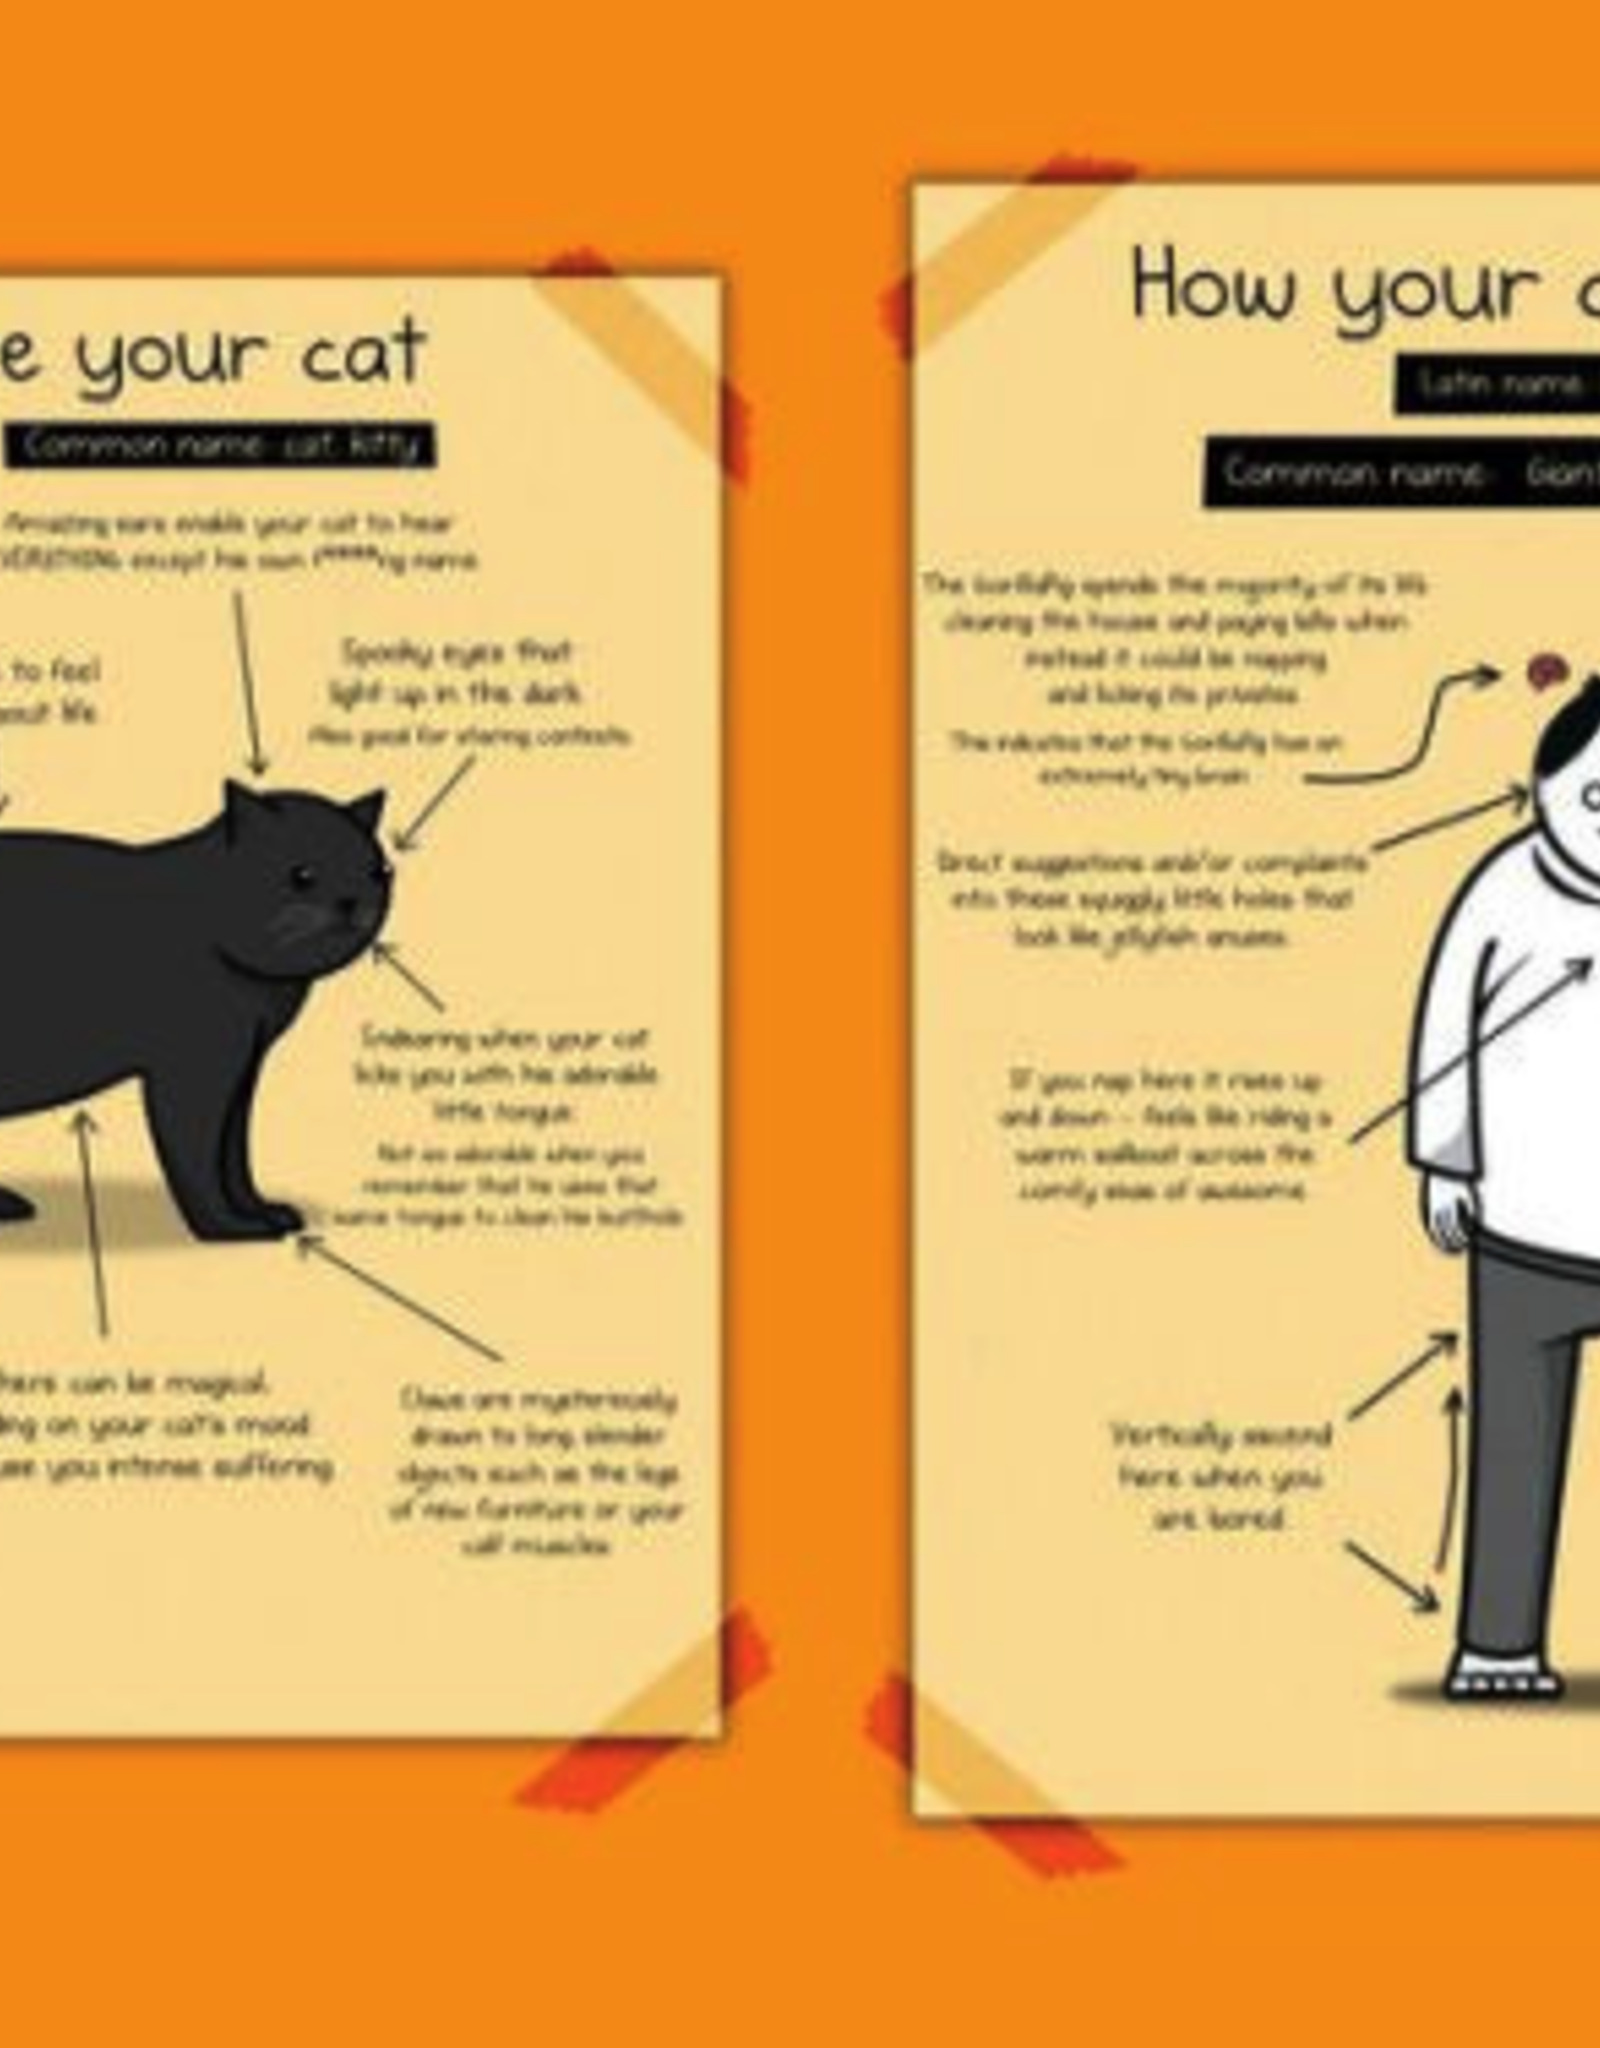 The oatmeal The Oatmeal - How to tell if your cat is plotting to kill you